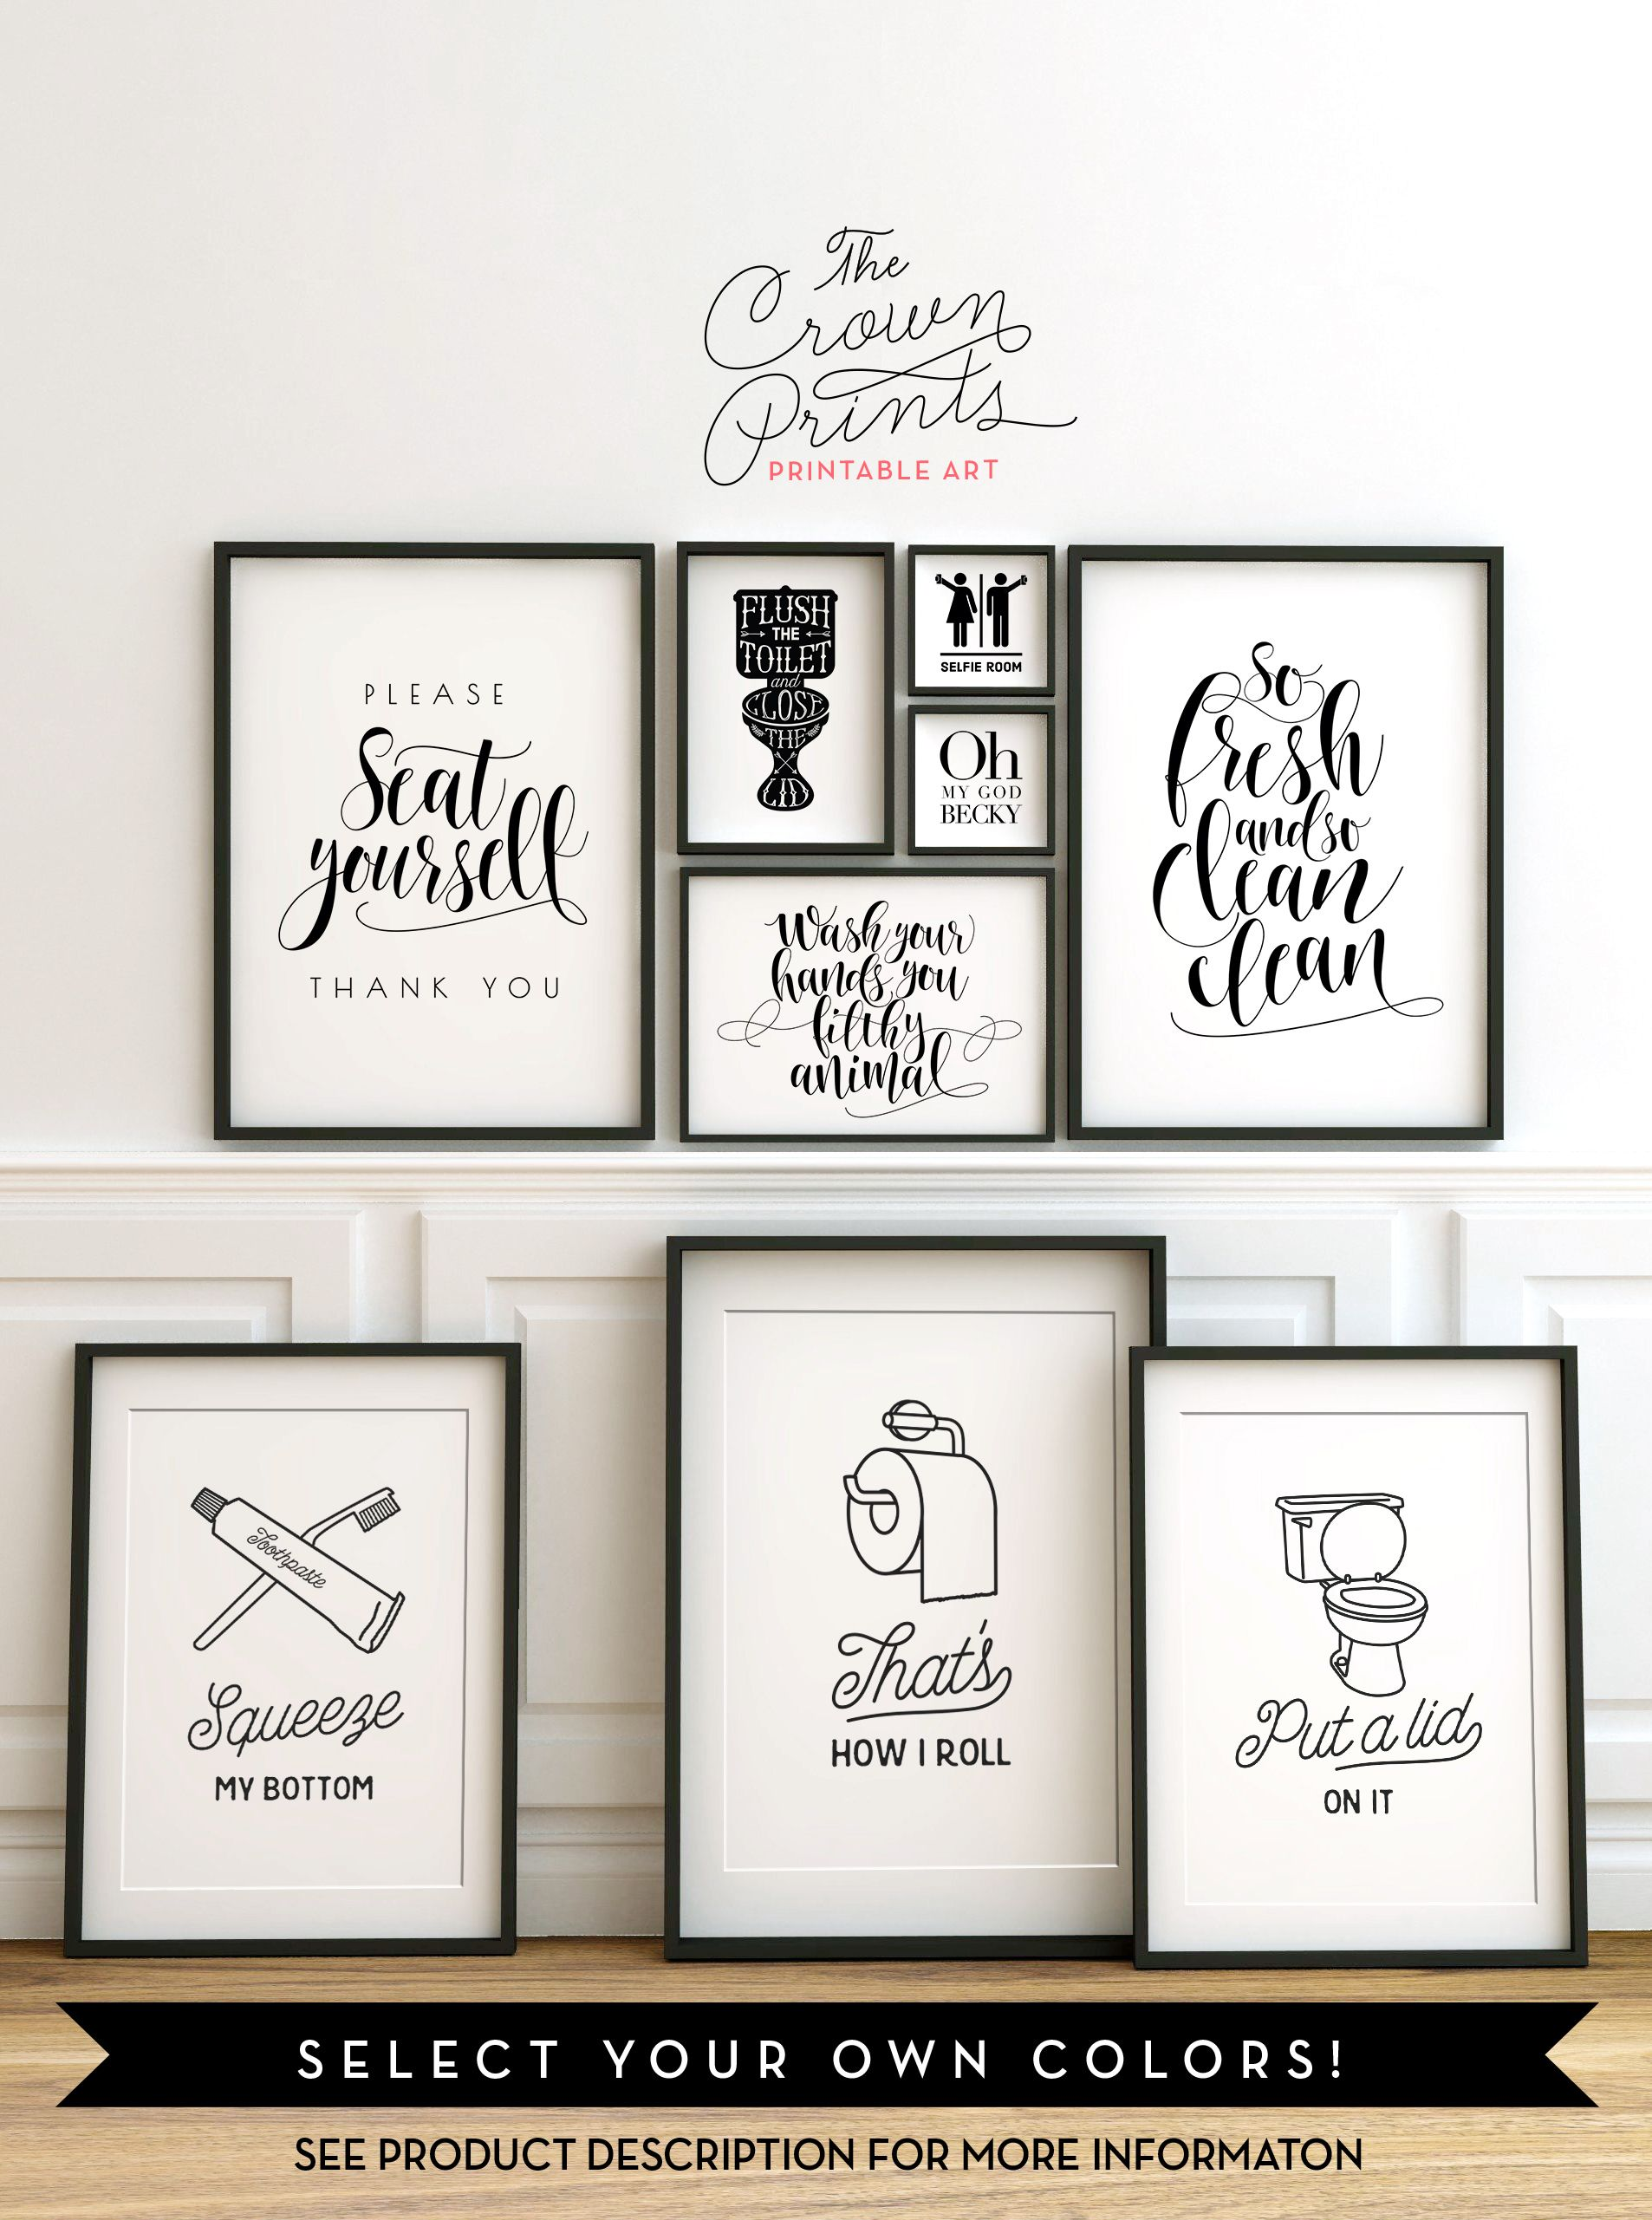 Bathroom wall decor quotes - Printable Bathroom Wall Art From The Crown Prints On Etsy Lots Of Funny Quotes And